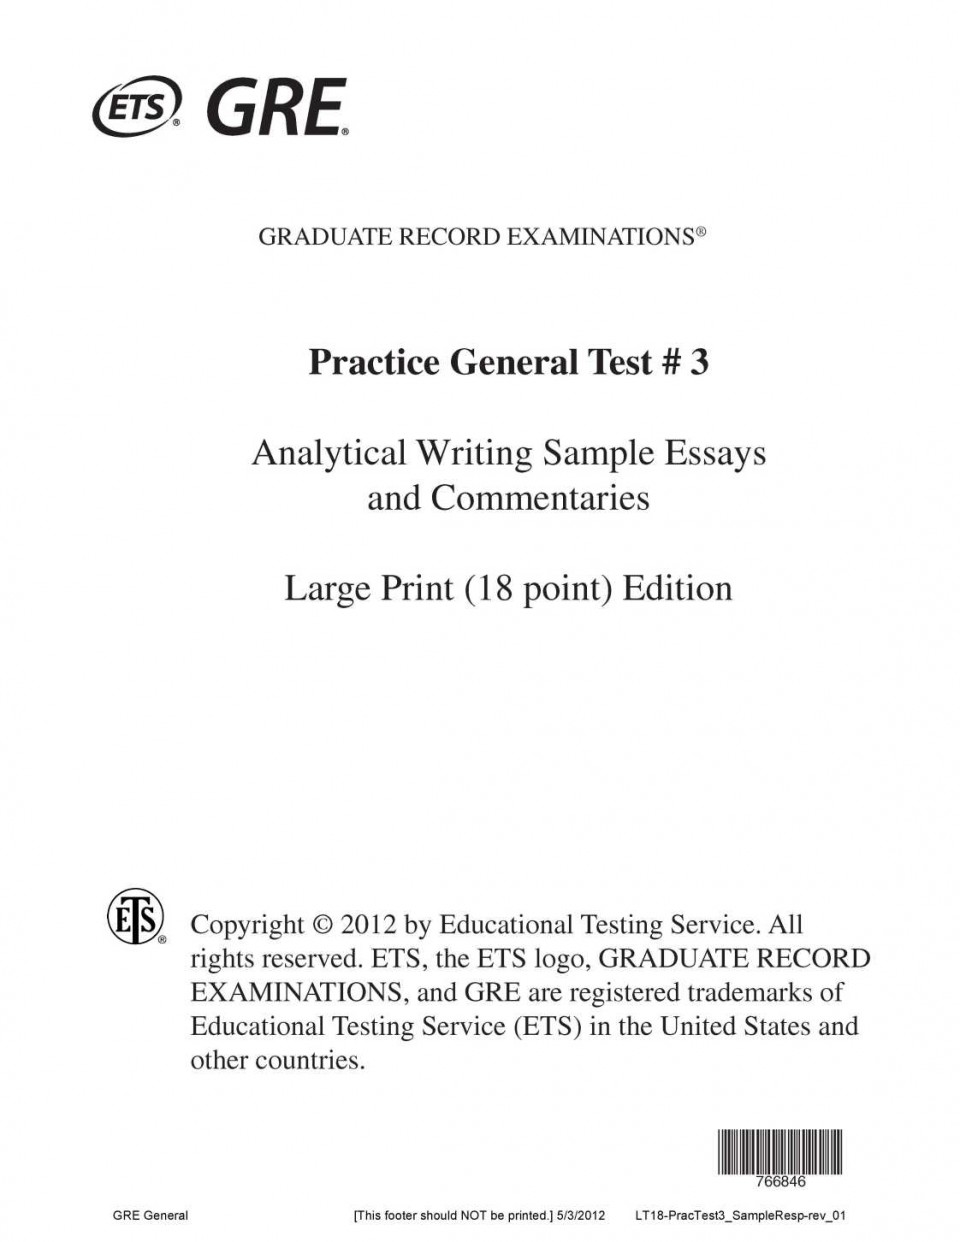 004 Gre Essay Book Pdf Example Essays Issue Meet The Categories Of Topics Writing Books Strategies Practice Examples Preparation Tips Incredible Analytical 960